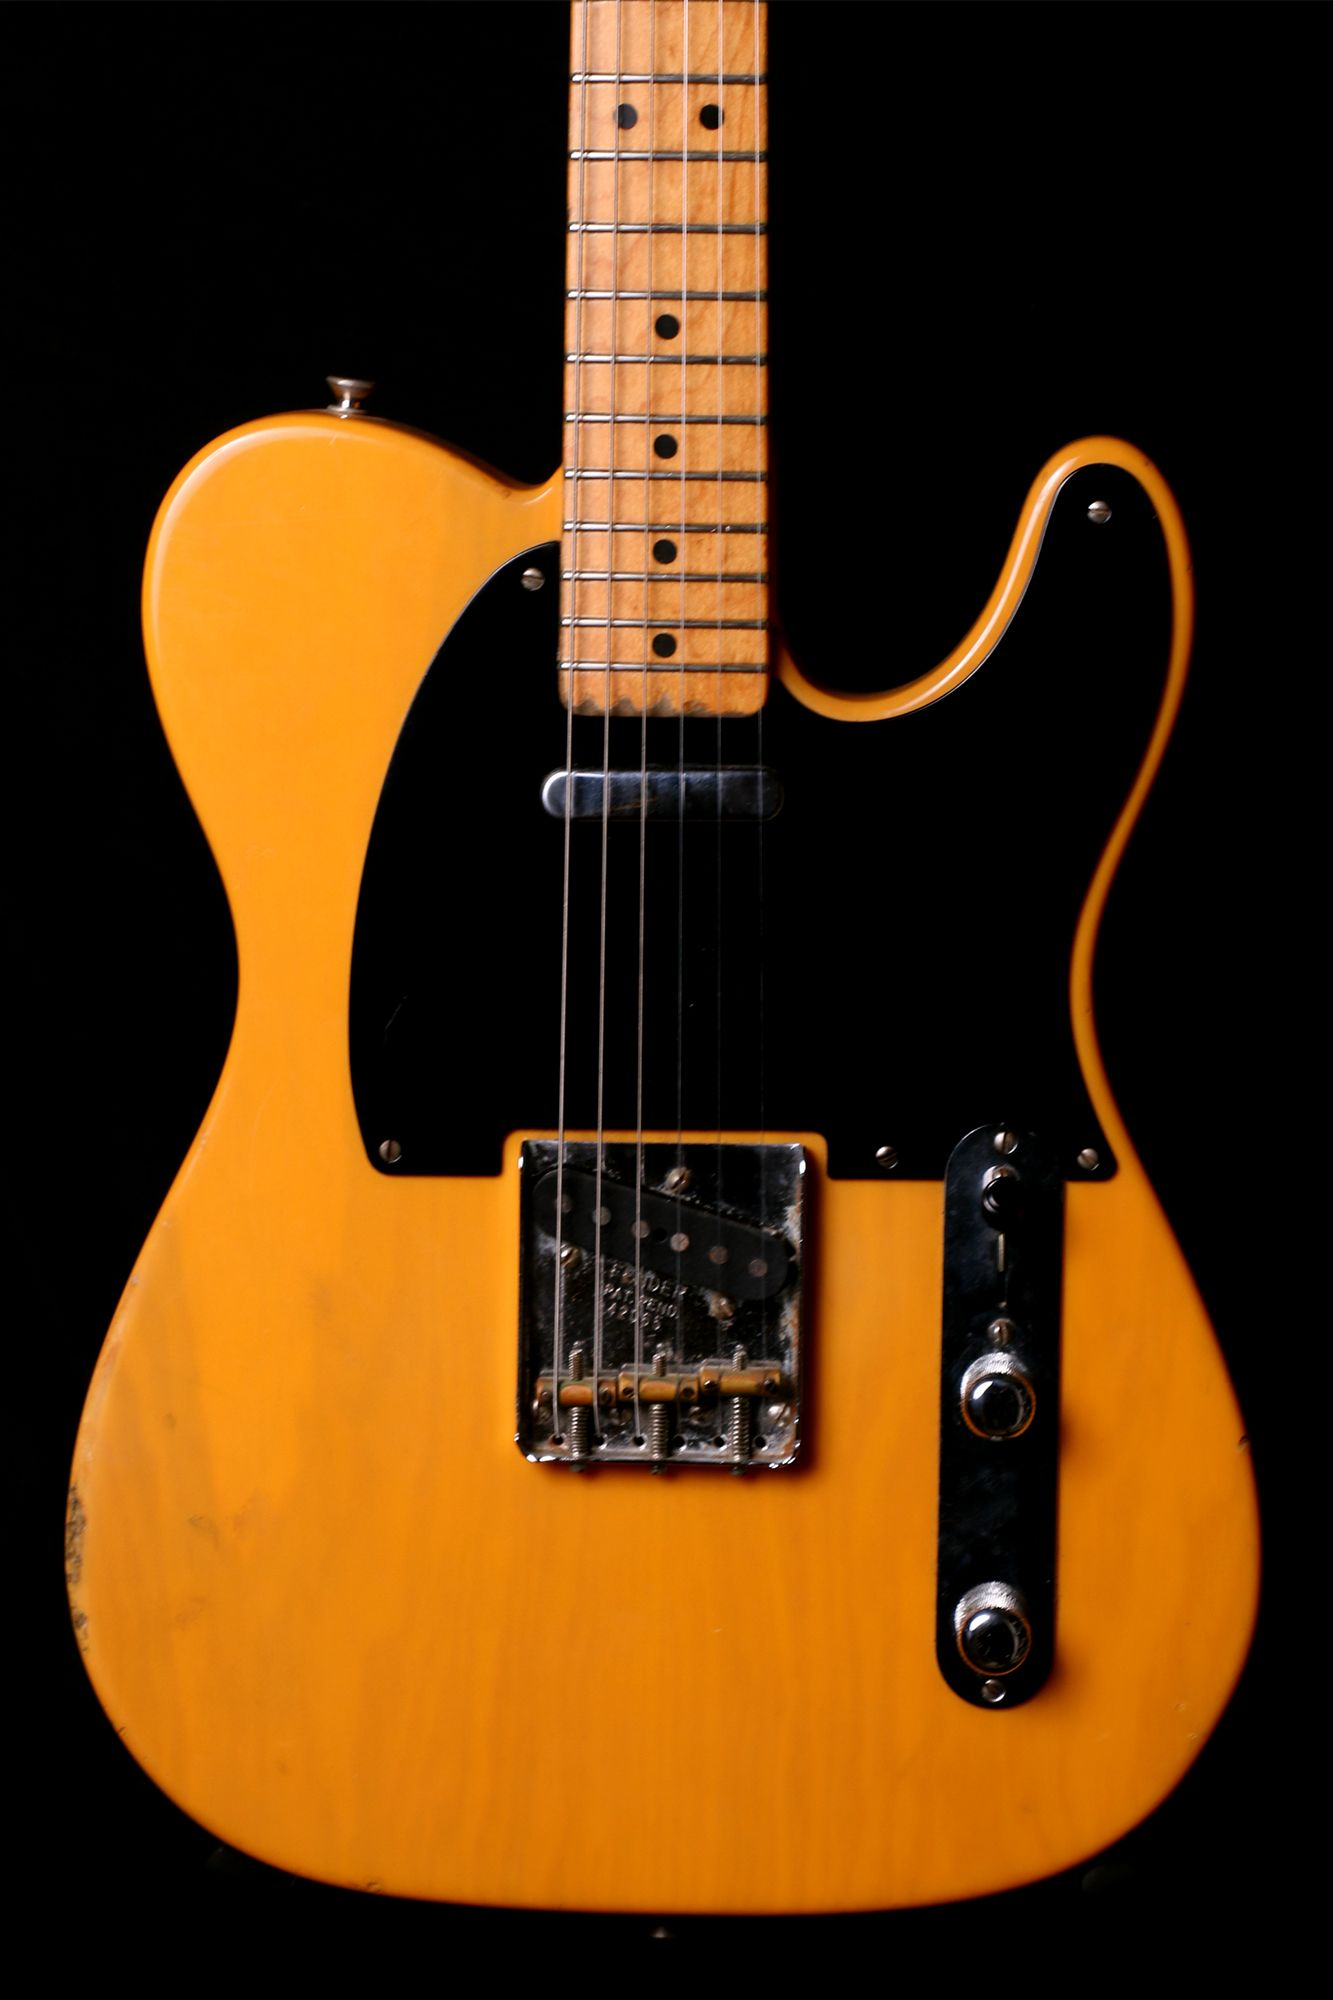 Fender 52 telecaster wiring diagram free download wiring diagrams 52 reissue telecaster wiring diagram free download wiring diagrams fender 1952 telecaster reissue butterscotch blonde gear fender 1952 telecaster reissue asfbconference2016 Images